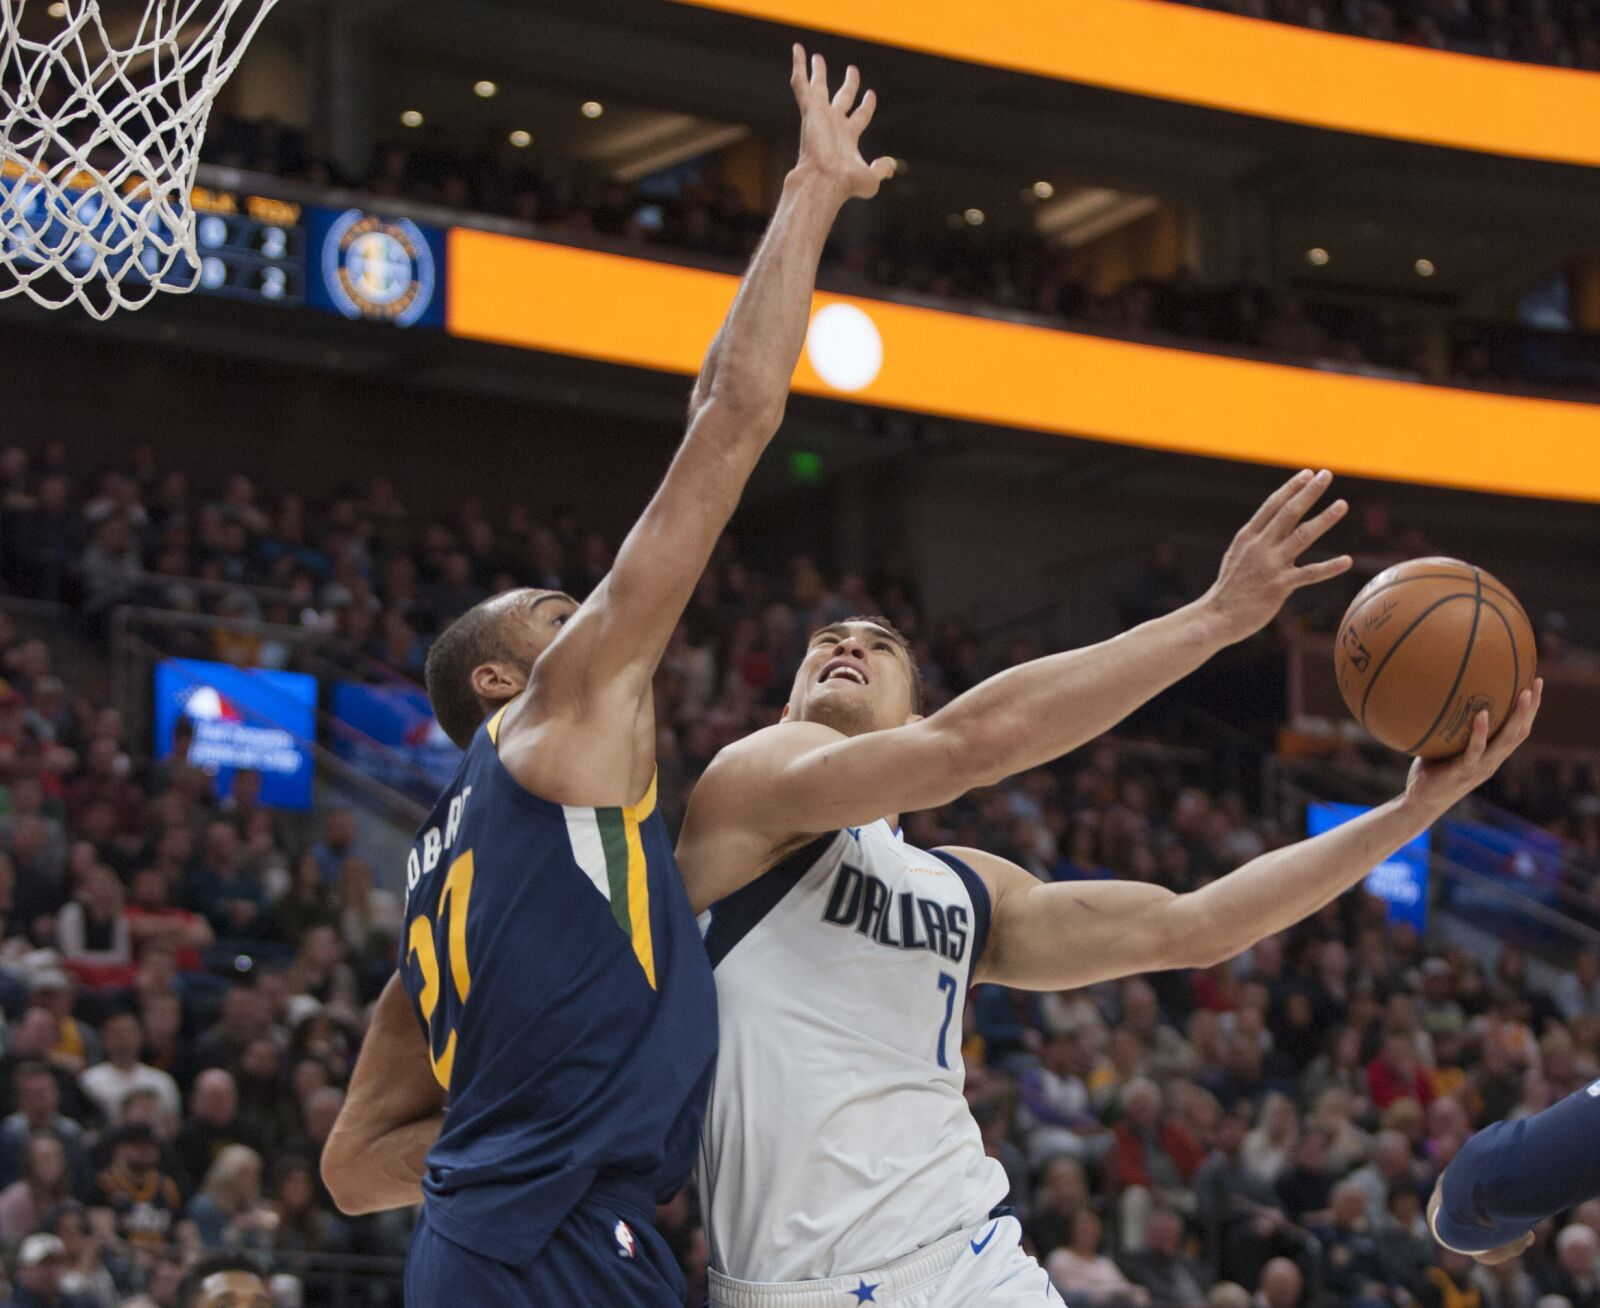 Utah Jazz: Rudy Gobert earns All-Defensive First Team, but eyes a bigger prize